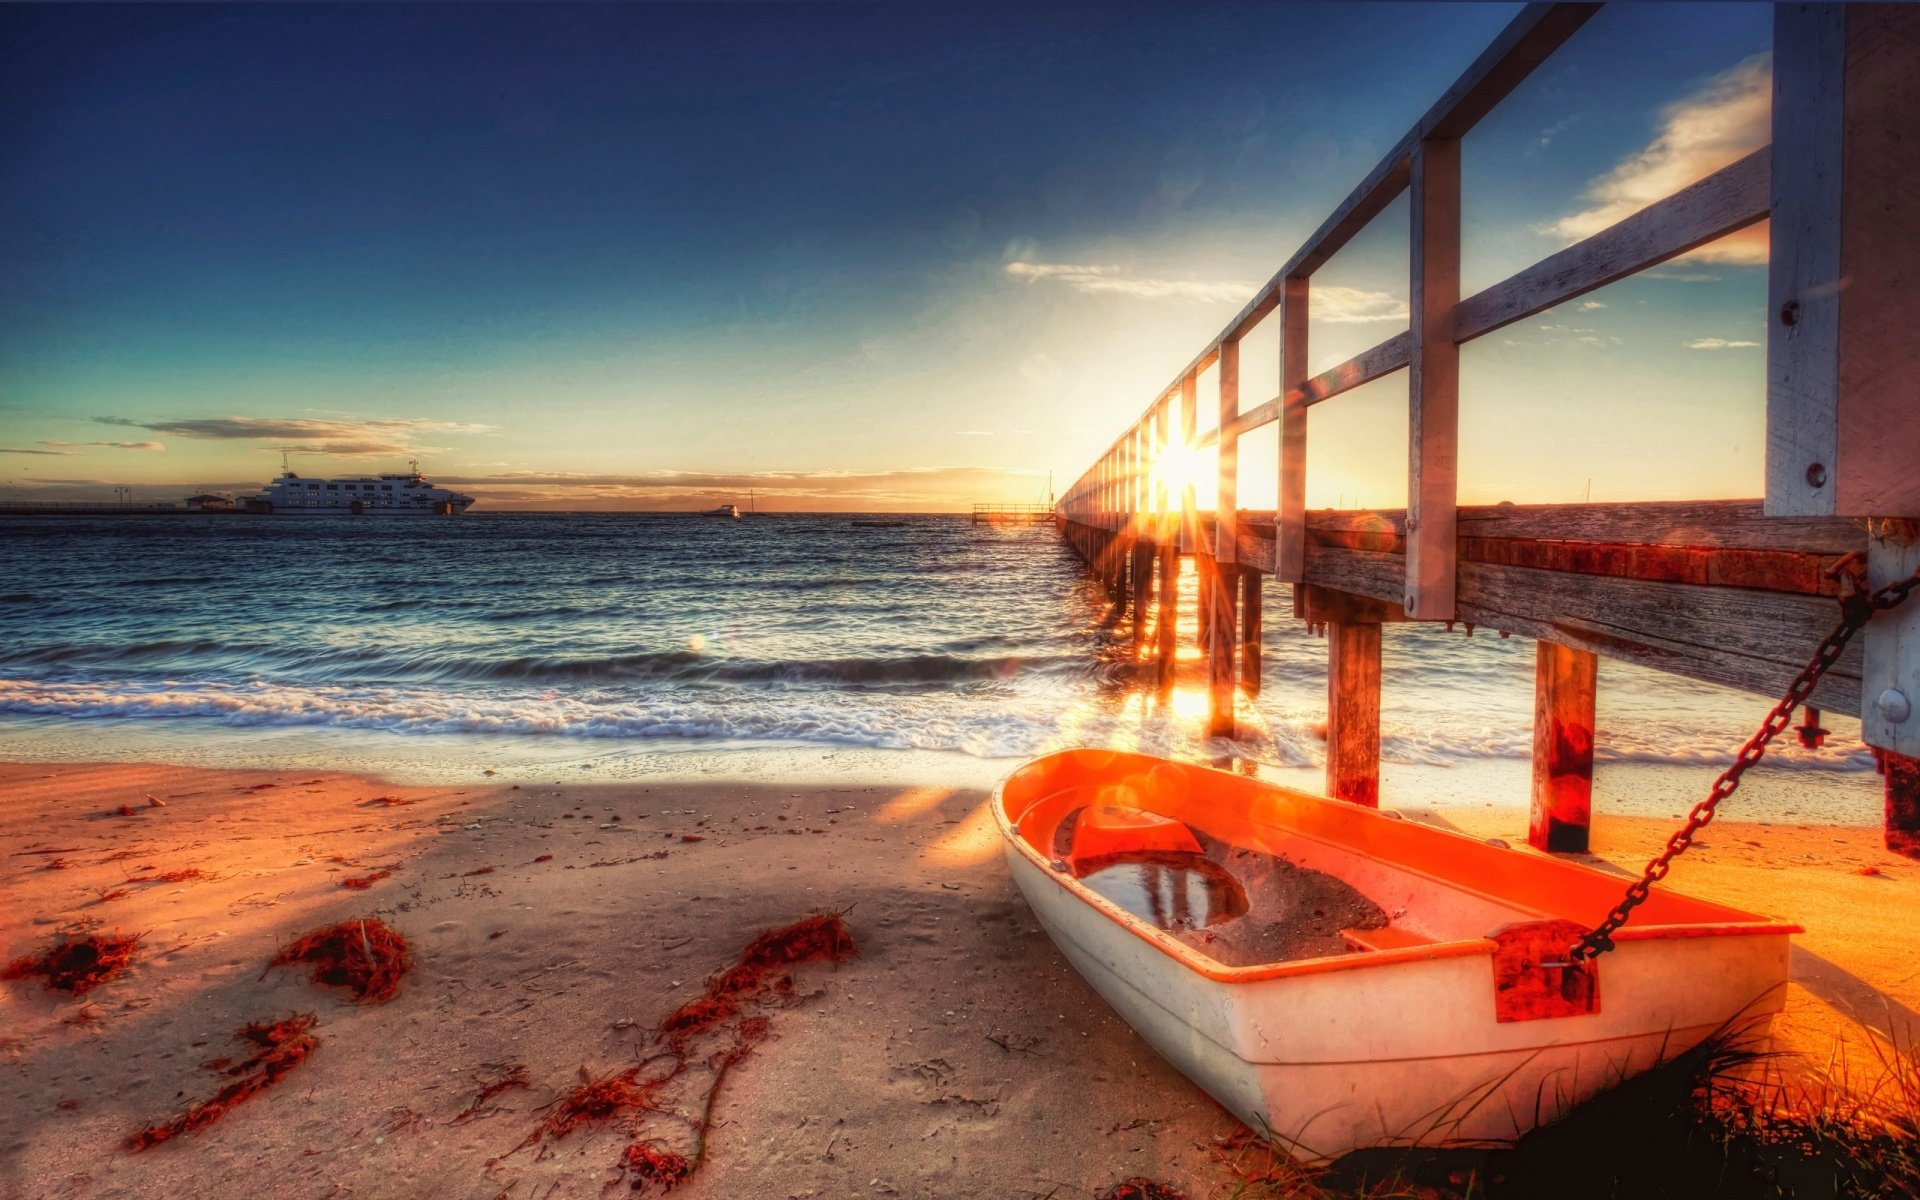 Boat Full HD Wallpaper and Background Image 1920x1200 1920x1200